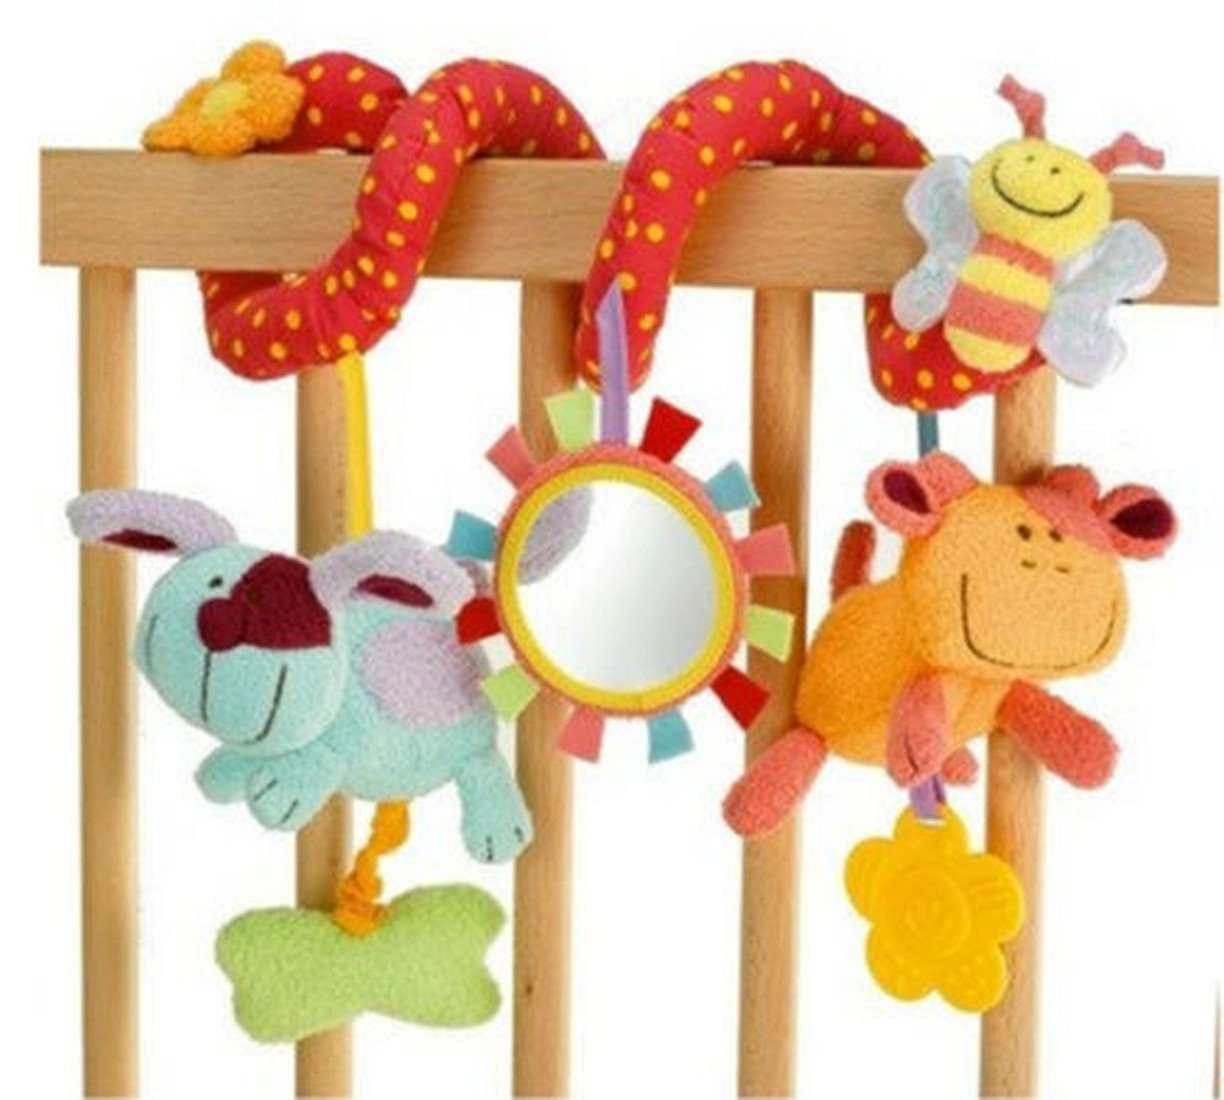 New Baby Cot Spiral Activity Hanging Decoration Baby Toys Cot Car Seat Pram Xmas Gifts Baby Boy by sfpong